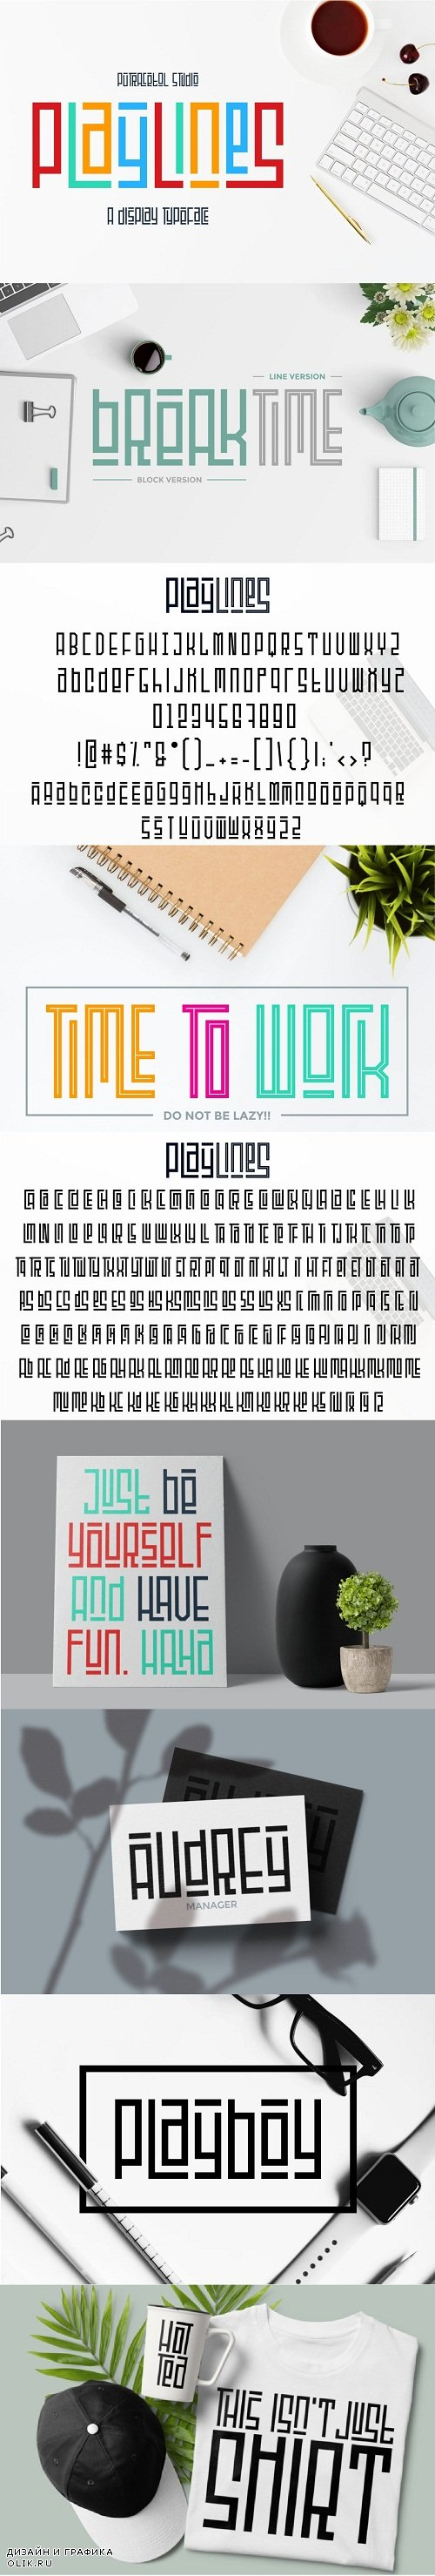 Playlines Typeface - 2962806